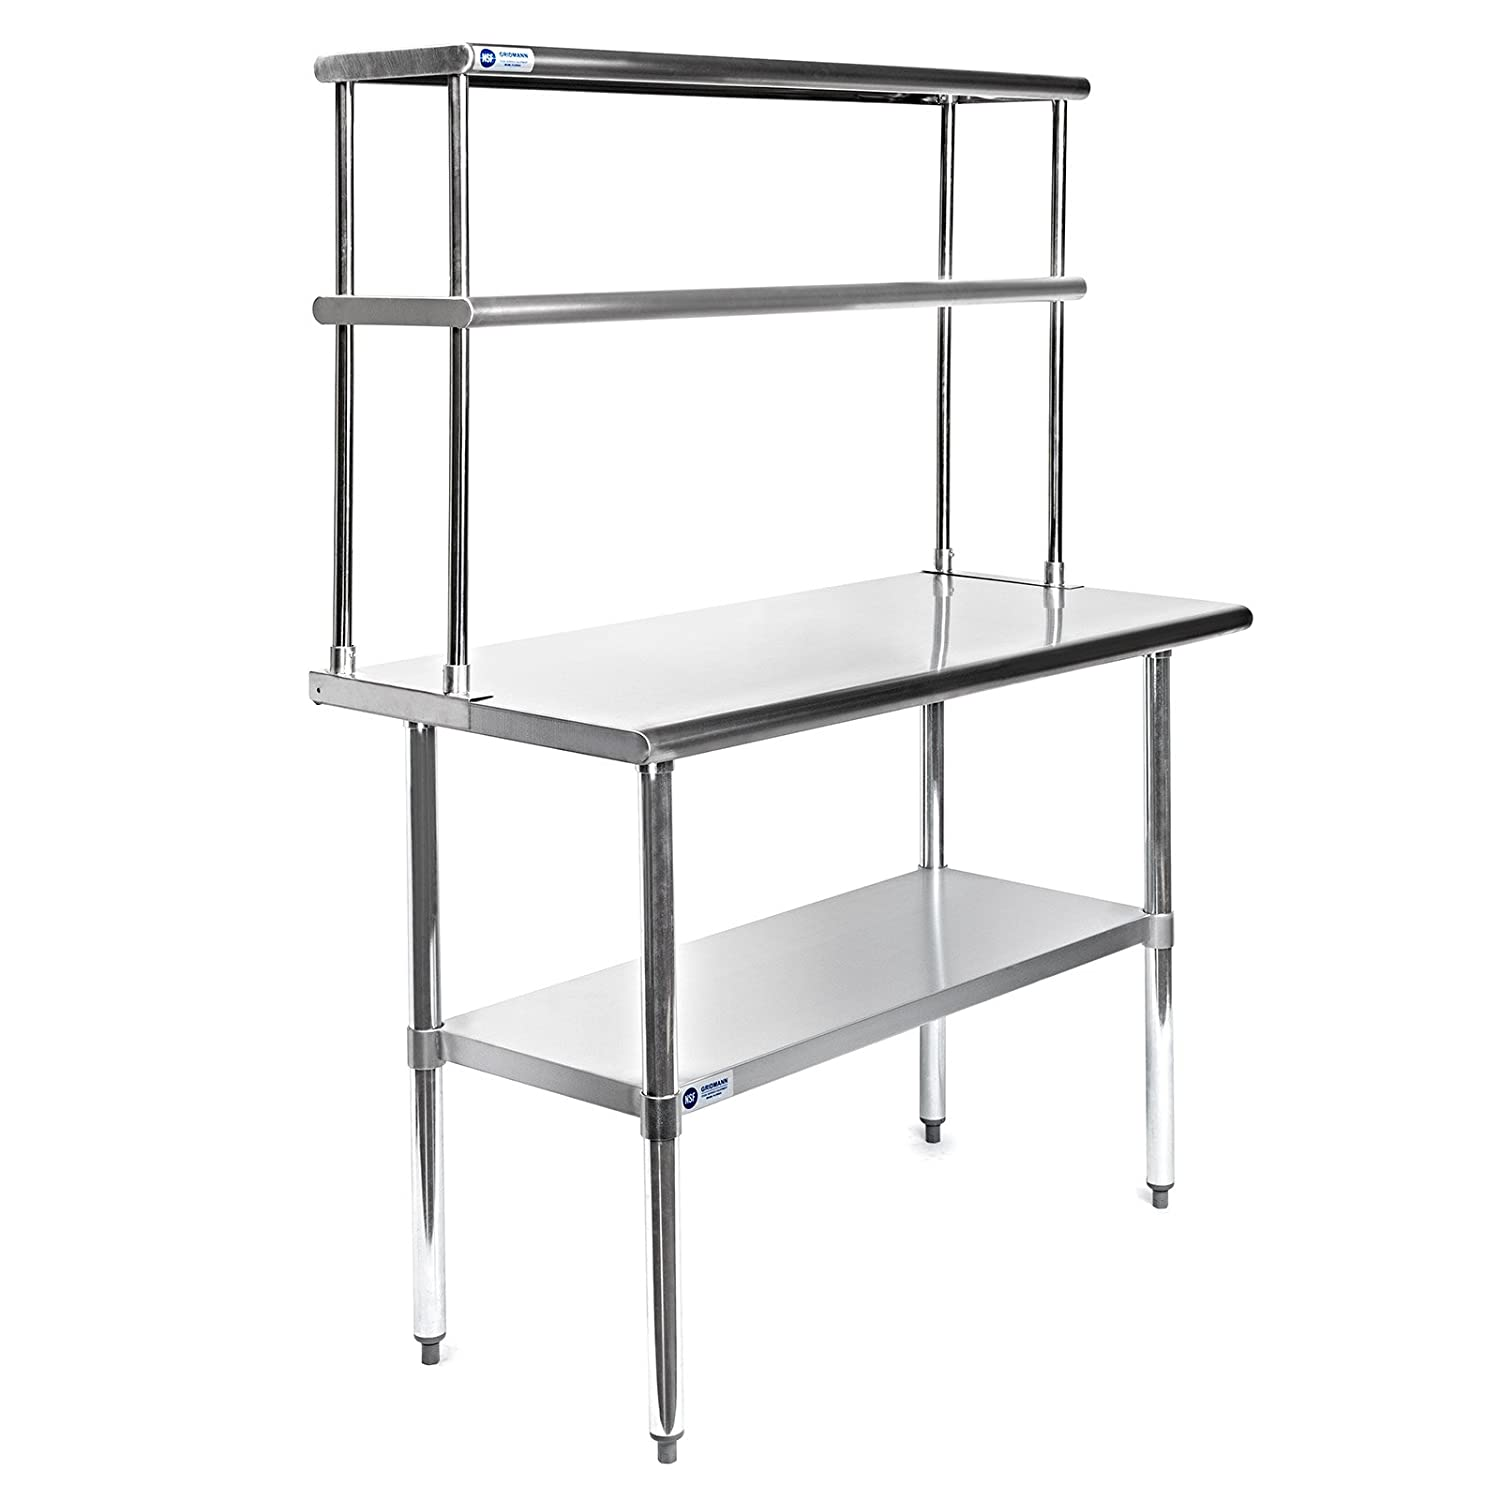 GRIDMANN NSF Stainless Steel Commercial Kitchen Prep & Work Table Plus A 2  Tier Shelf - 48 in  x 12 in